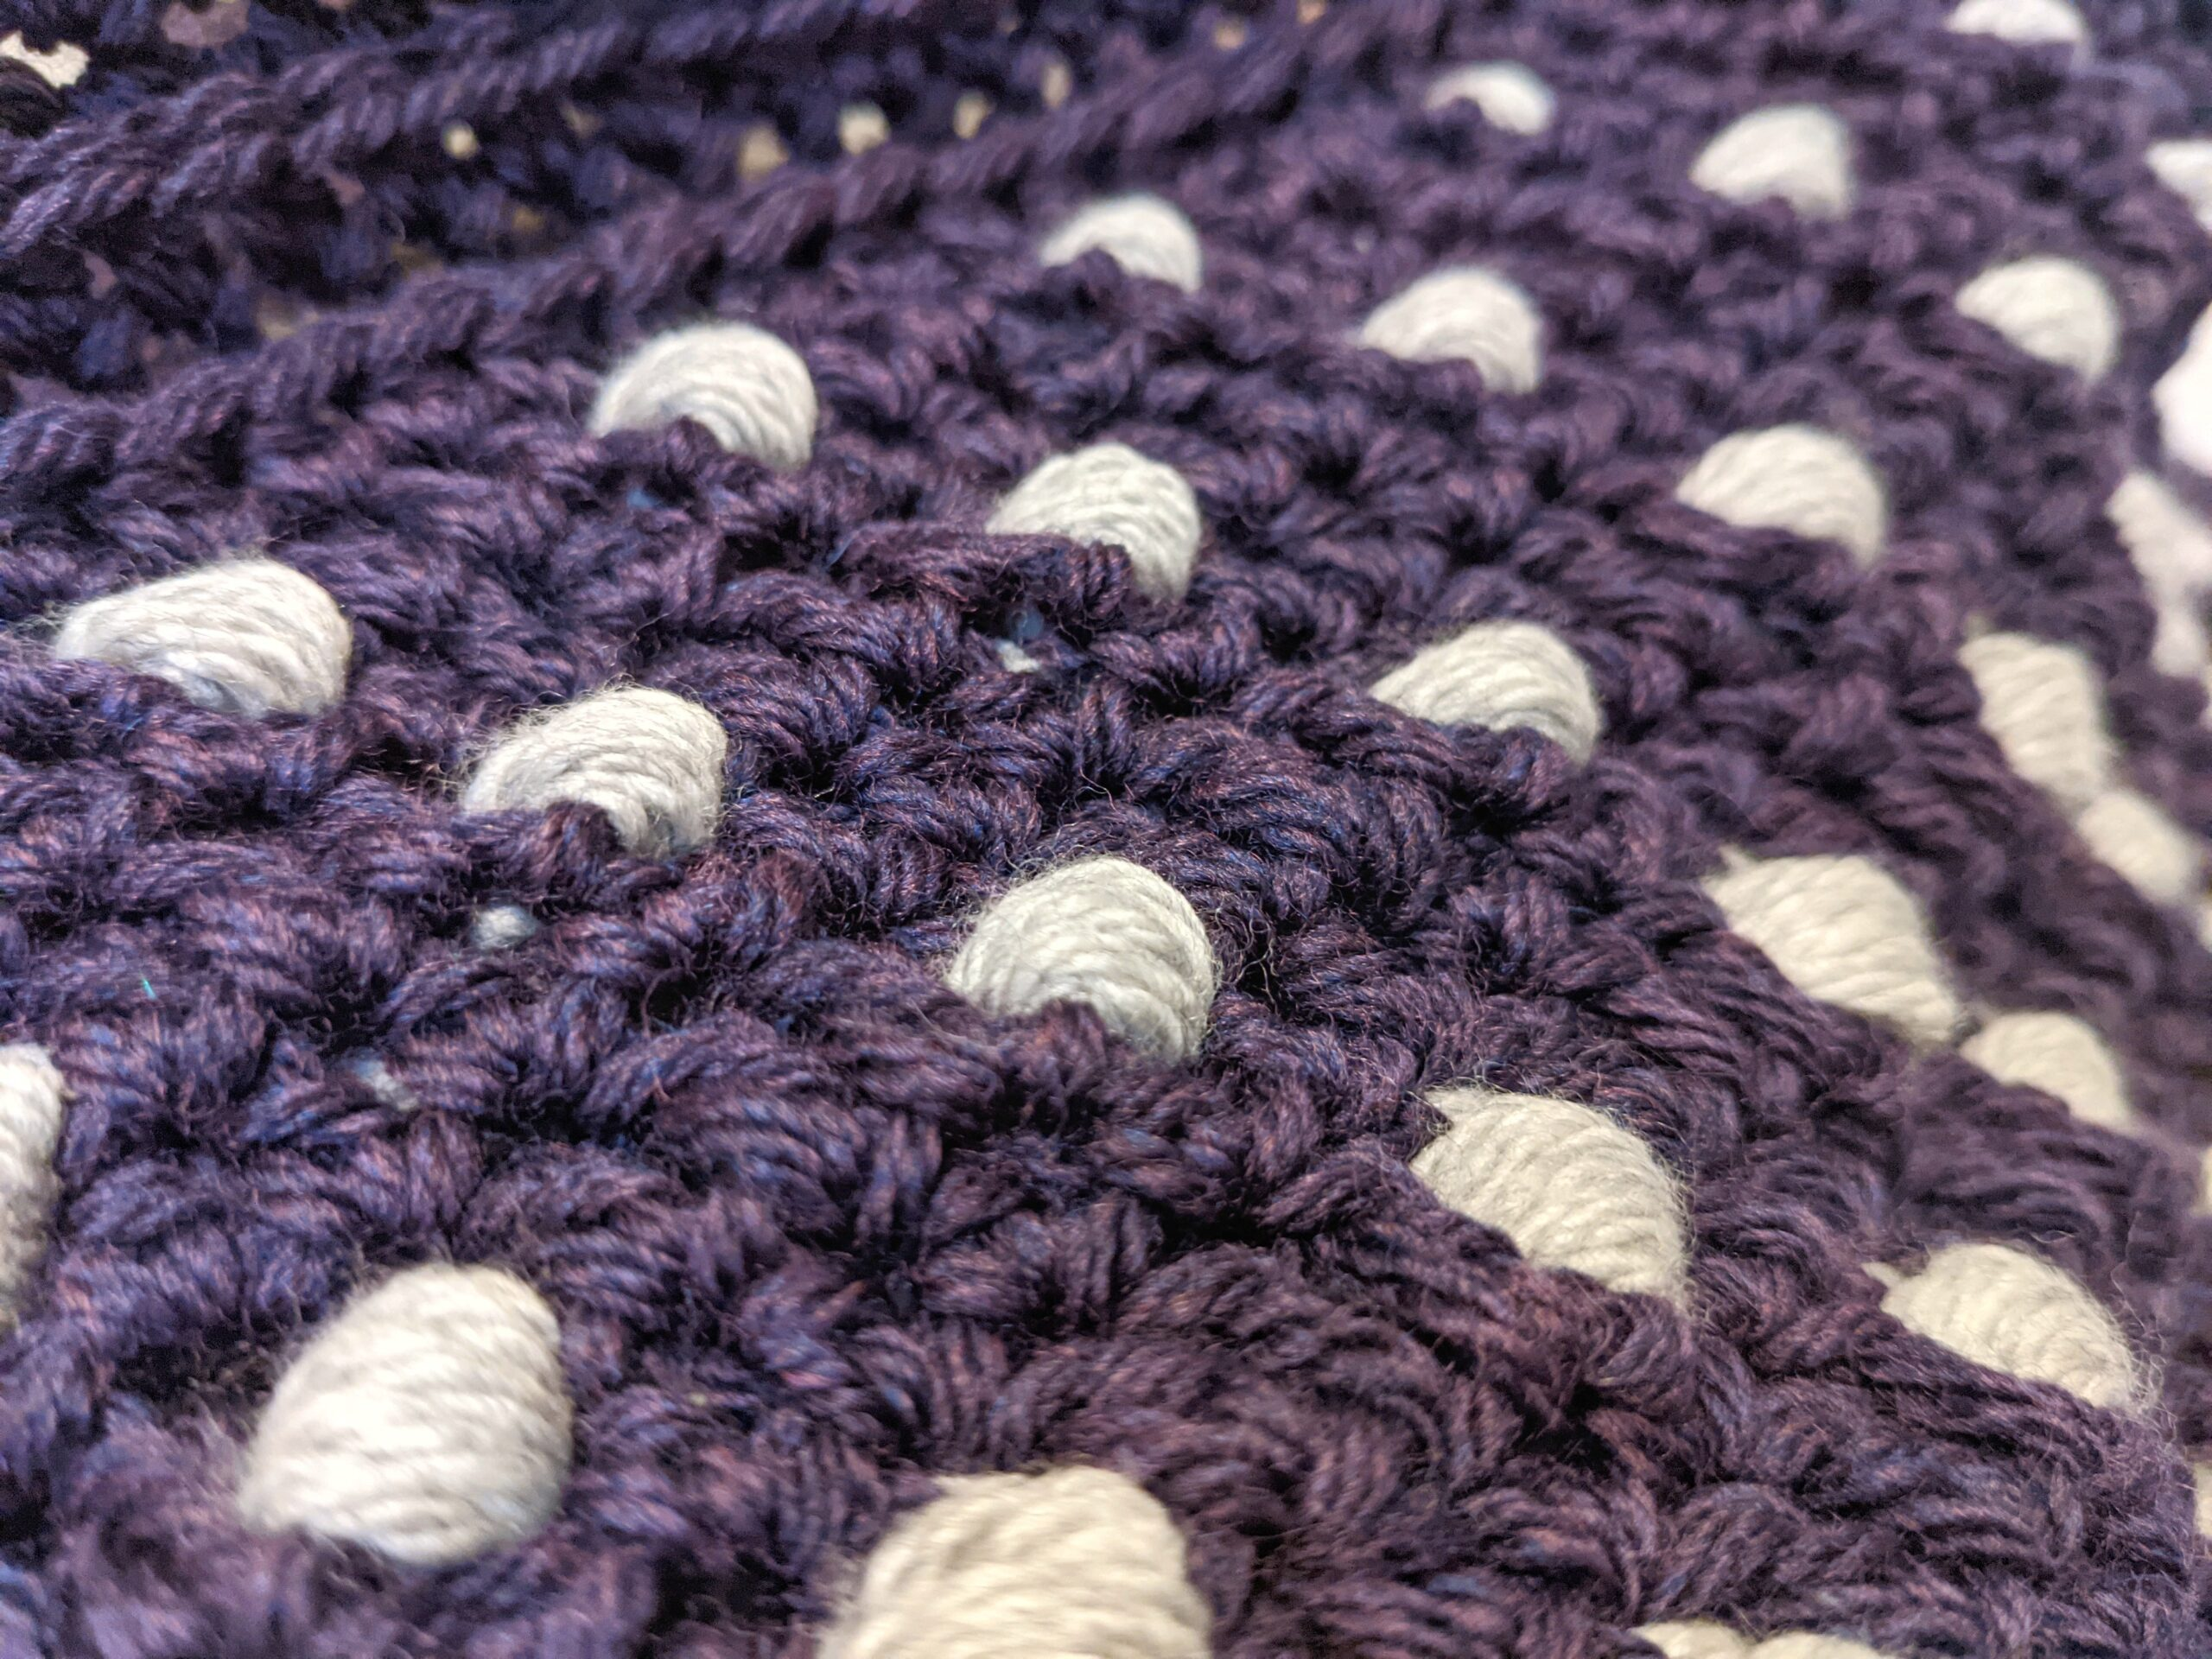 A close up of crochet puff stitches in gray yarn on a purple crochet background